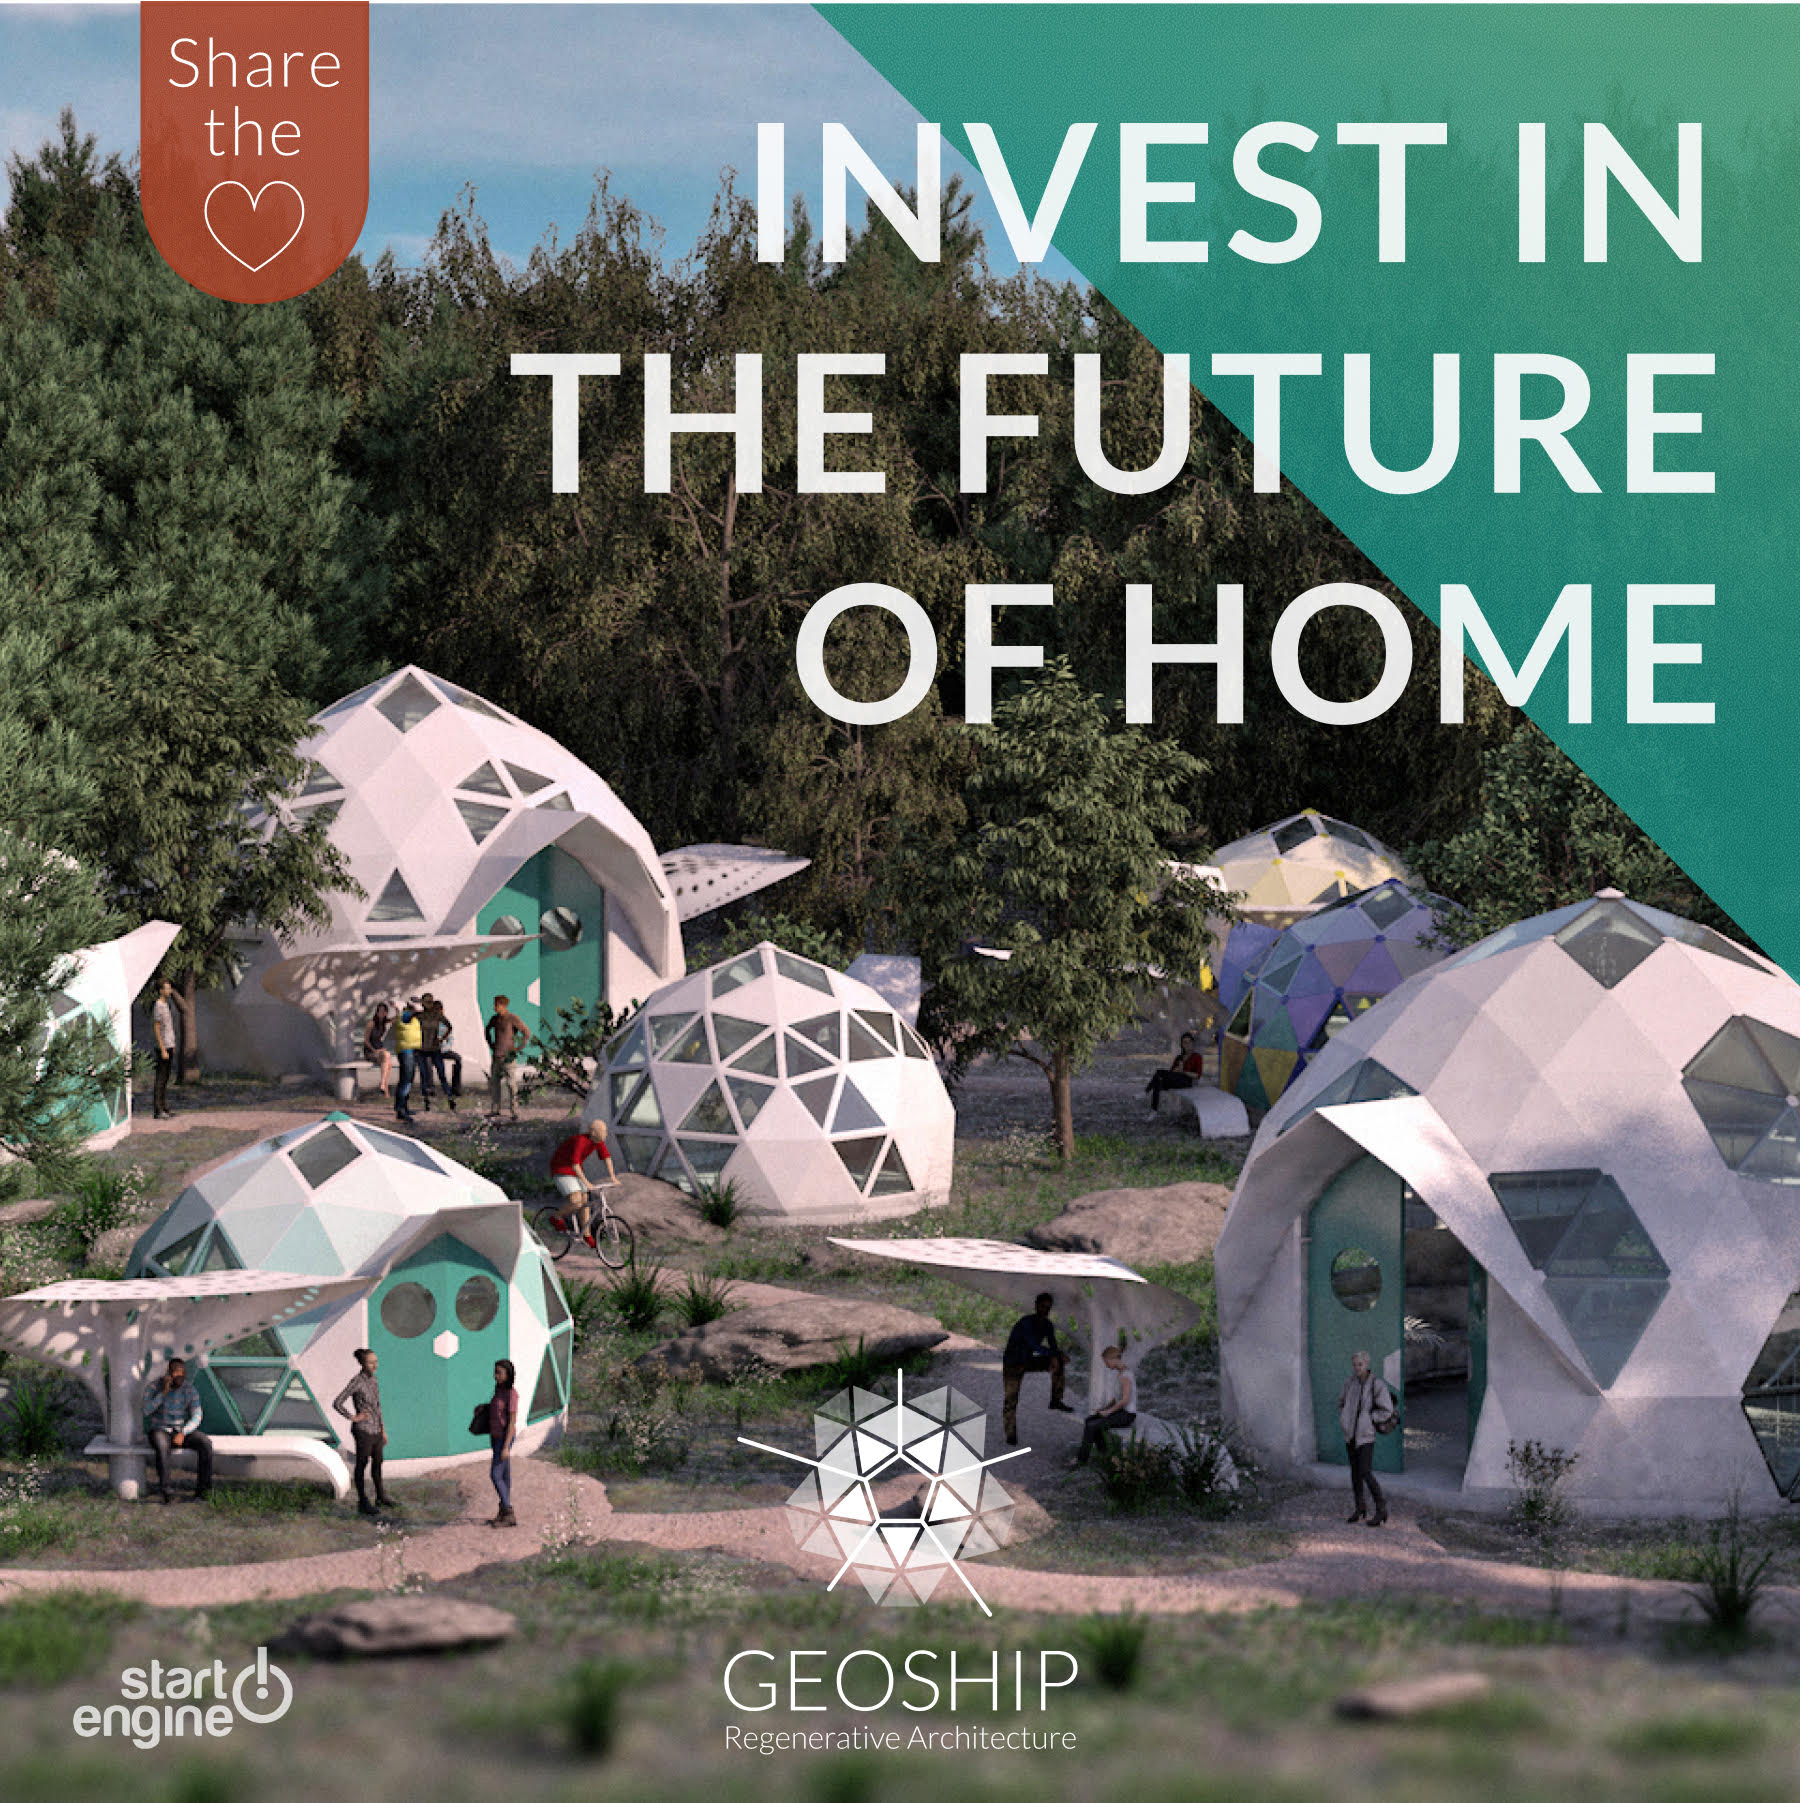 Joining GEOSHIP – The Future of Home